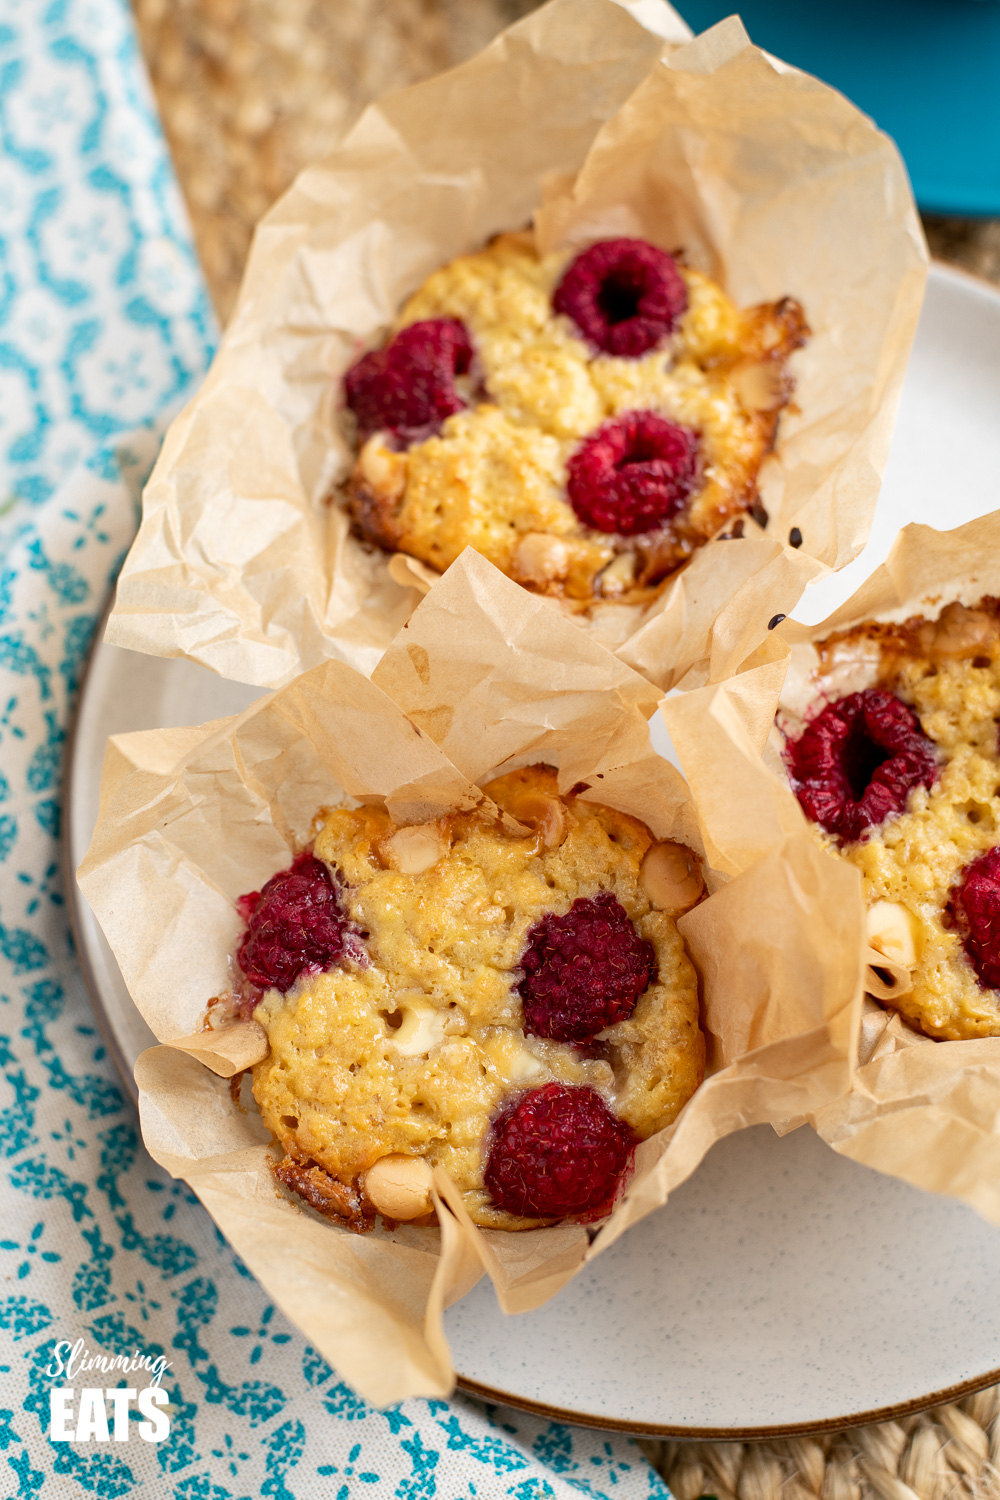 3 Raspberry and White Chocolate Baked Oatmeal in squares of parchment on plate